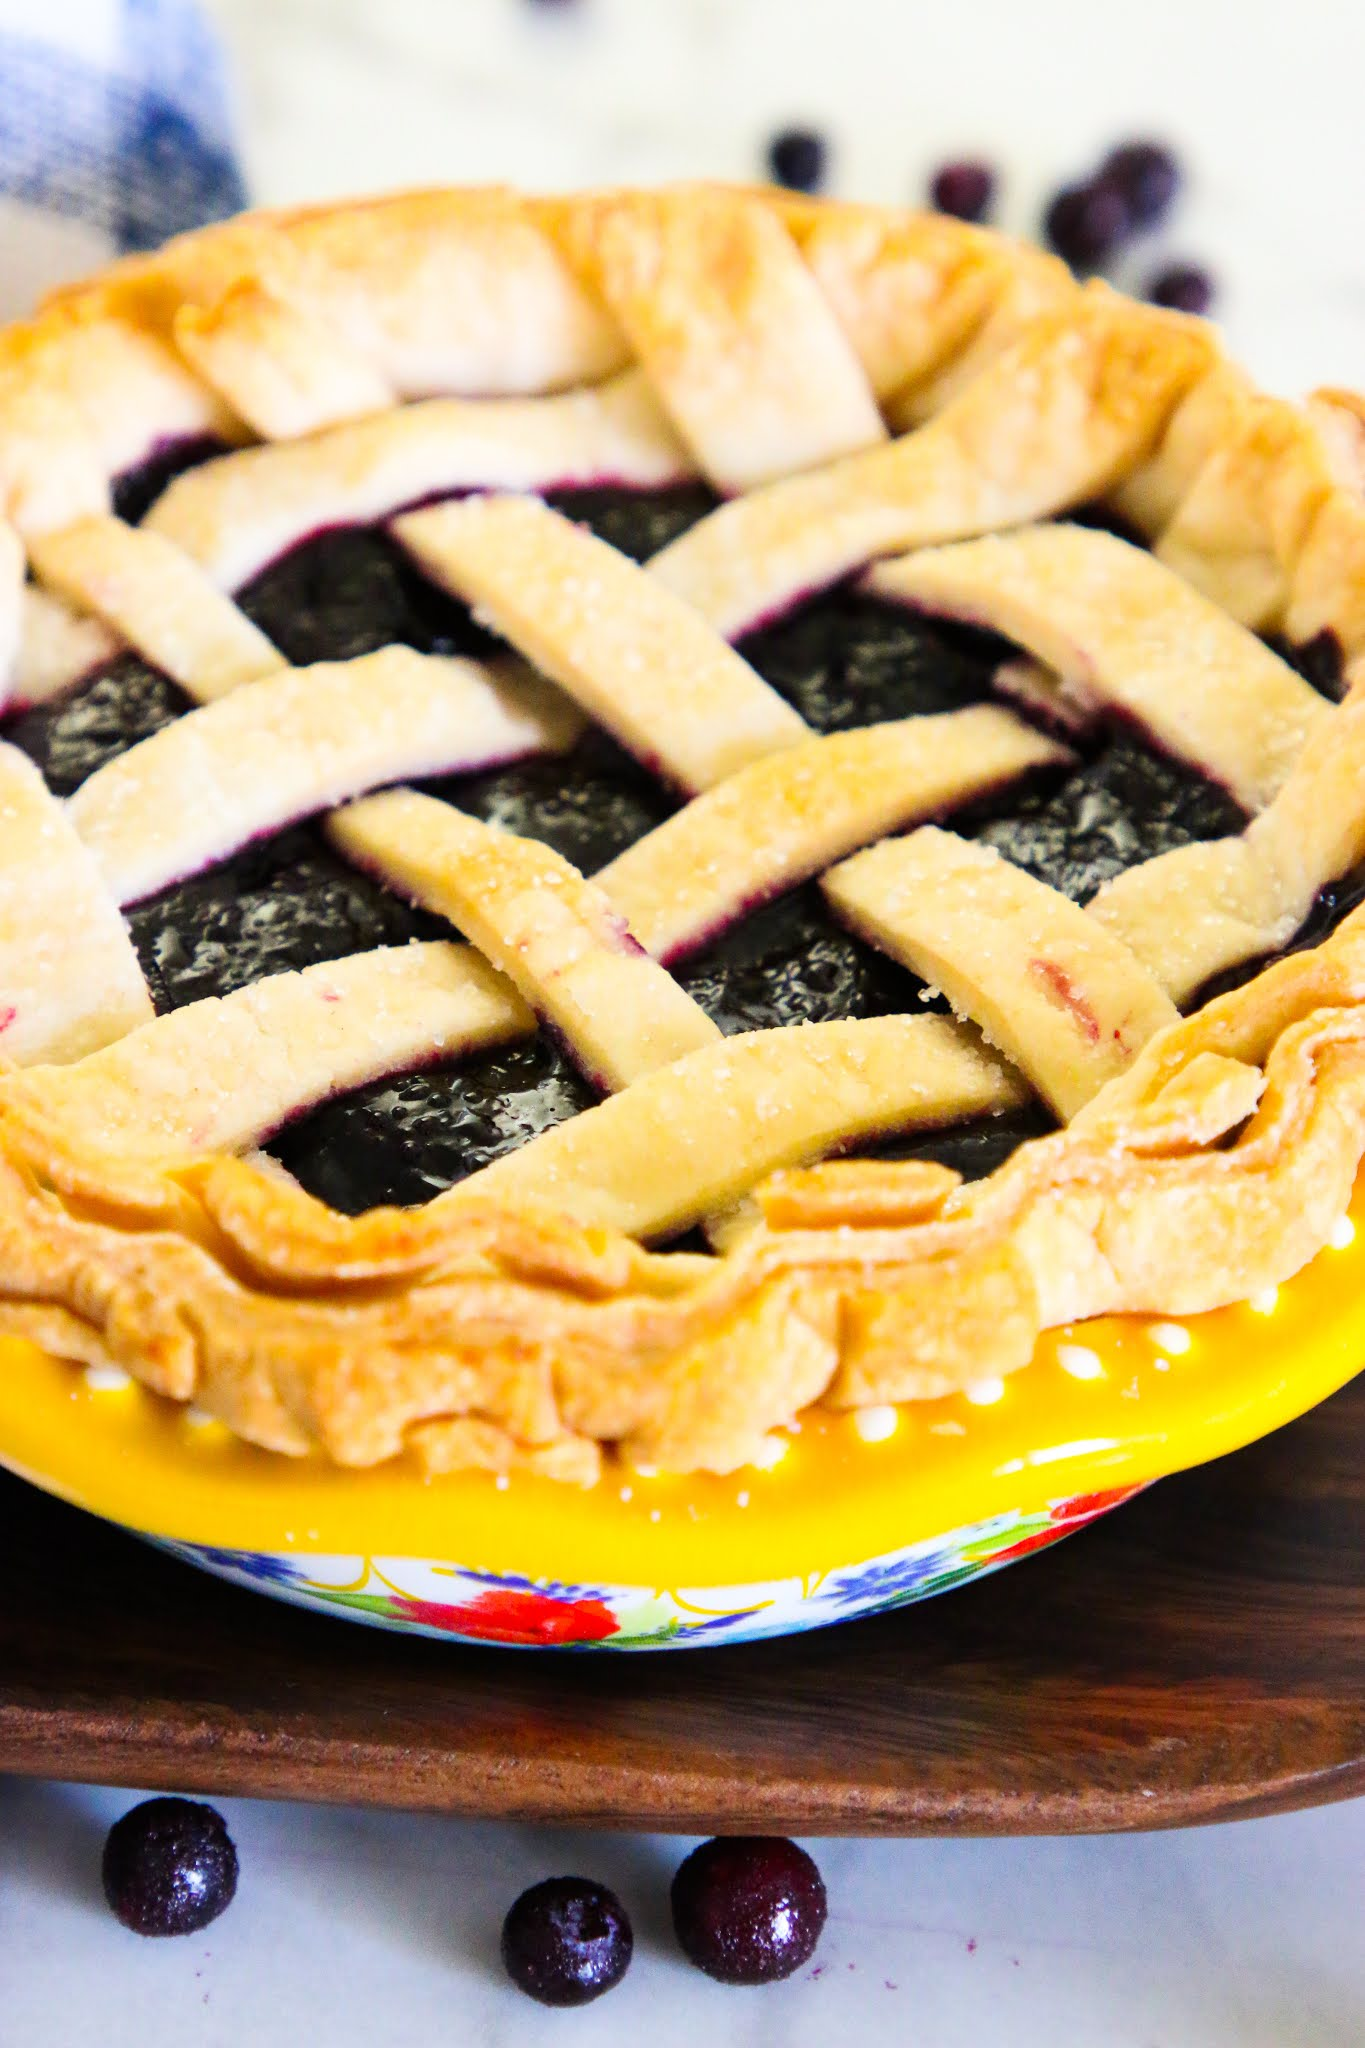 Blueberry pie in a blue pie plate with a blue dish towel in the background and blueberries scattered on the table.